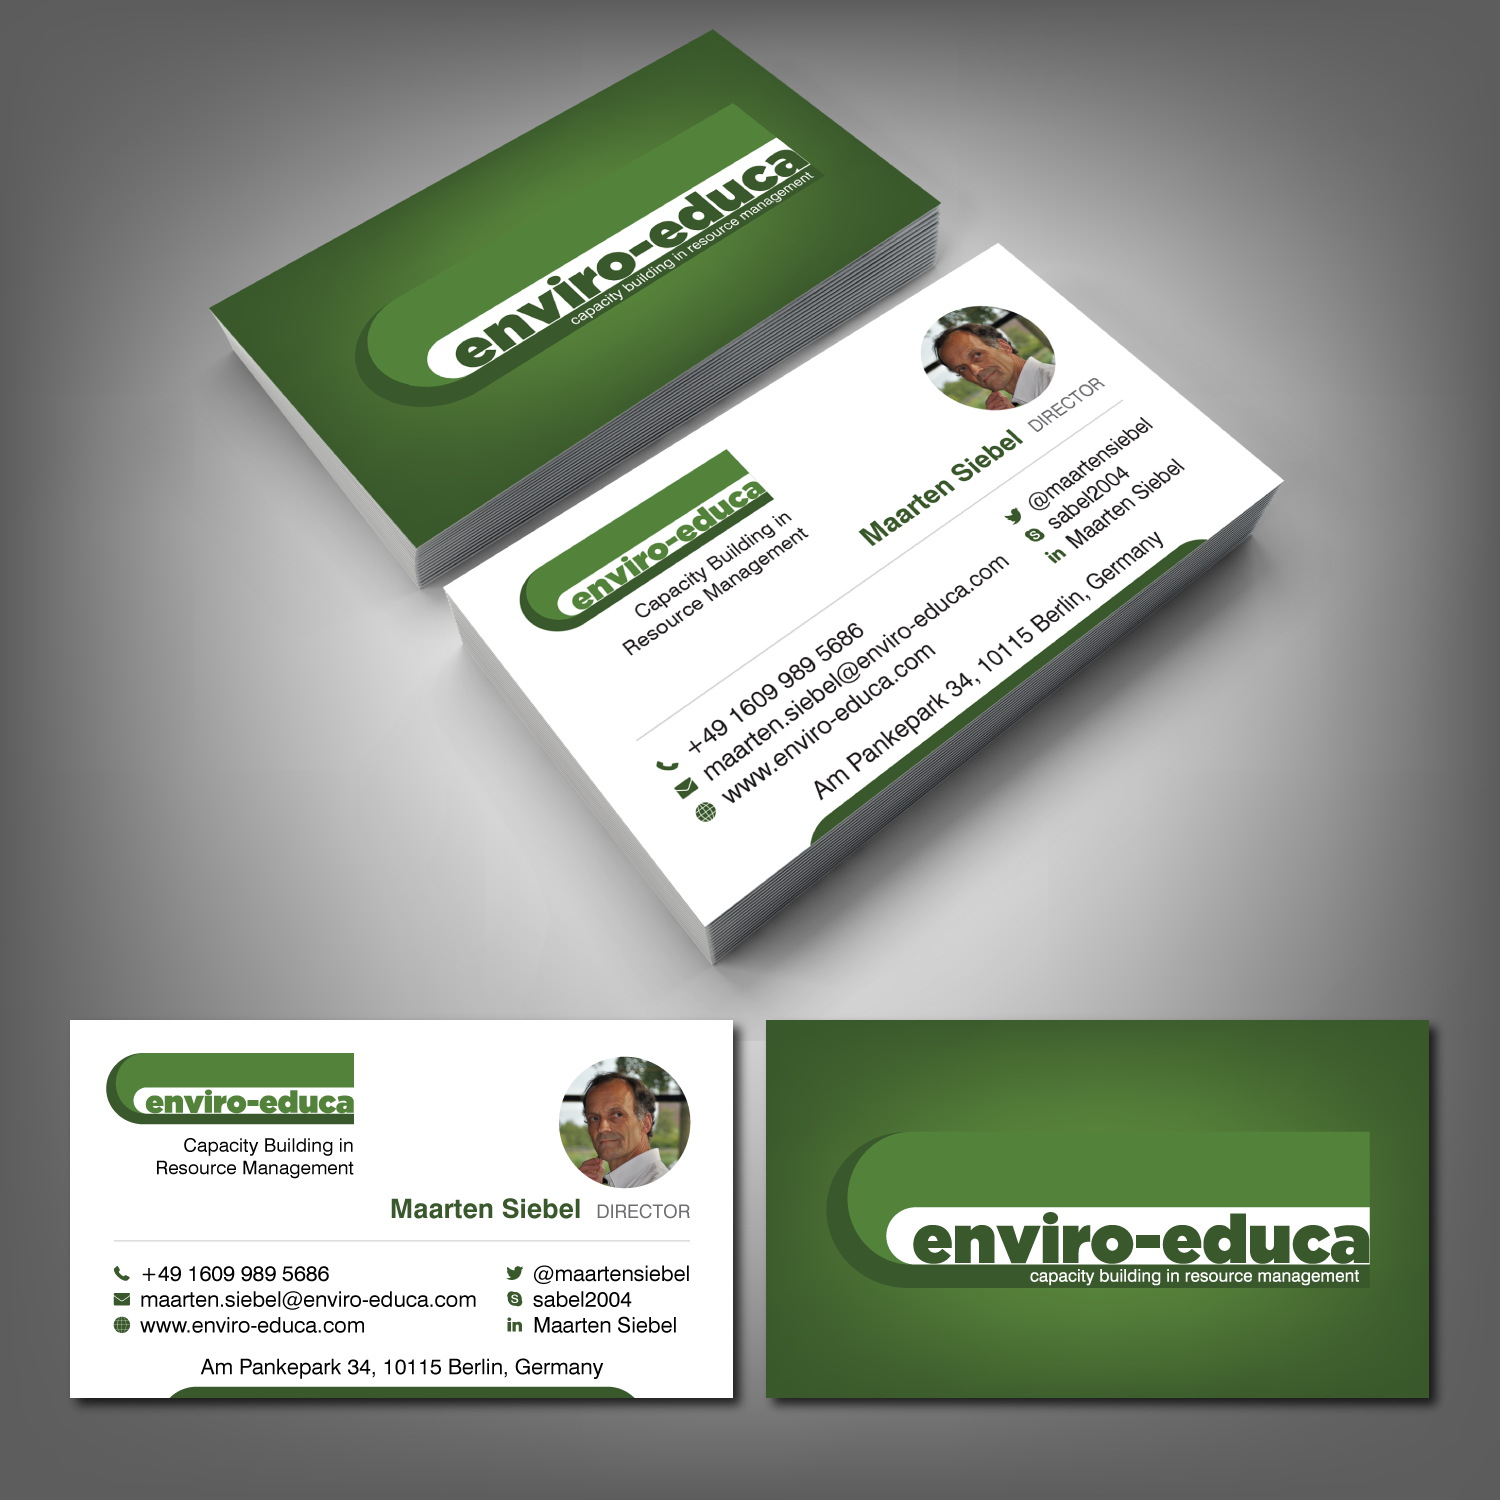 Elegant playful business business card design for enviro educa by business card design by adiazudin for enviro educa design 17822632 reheart Gallery